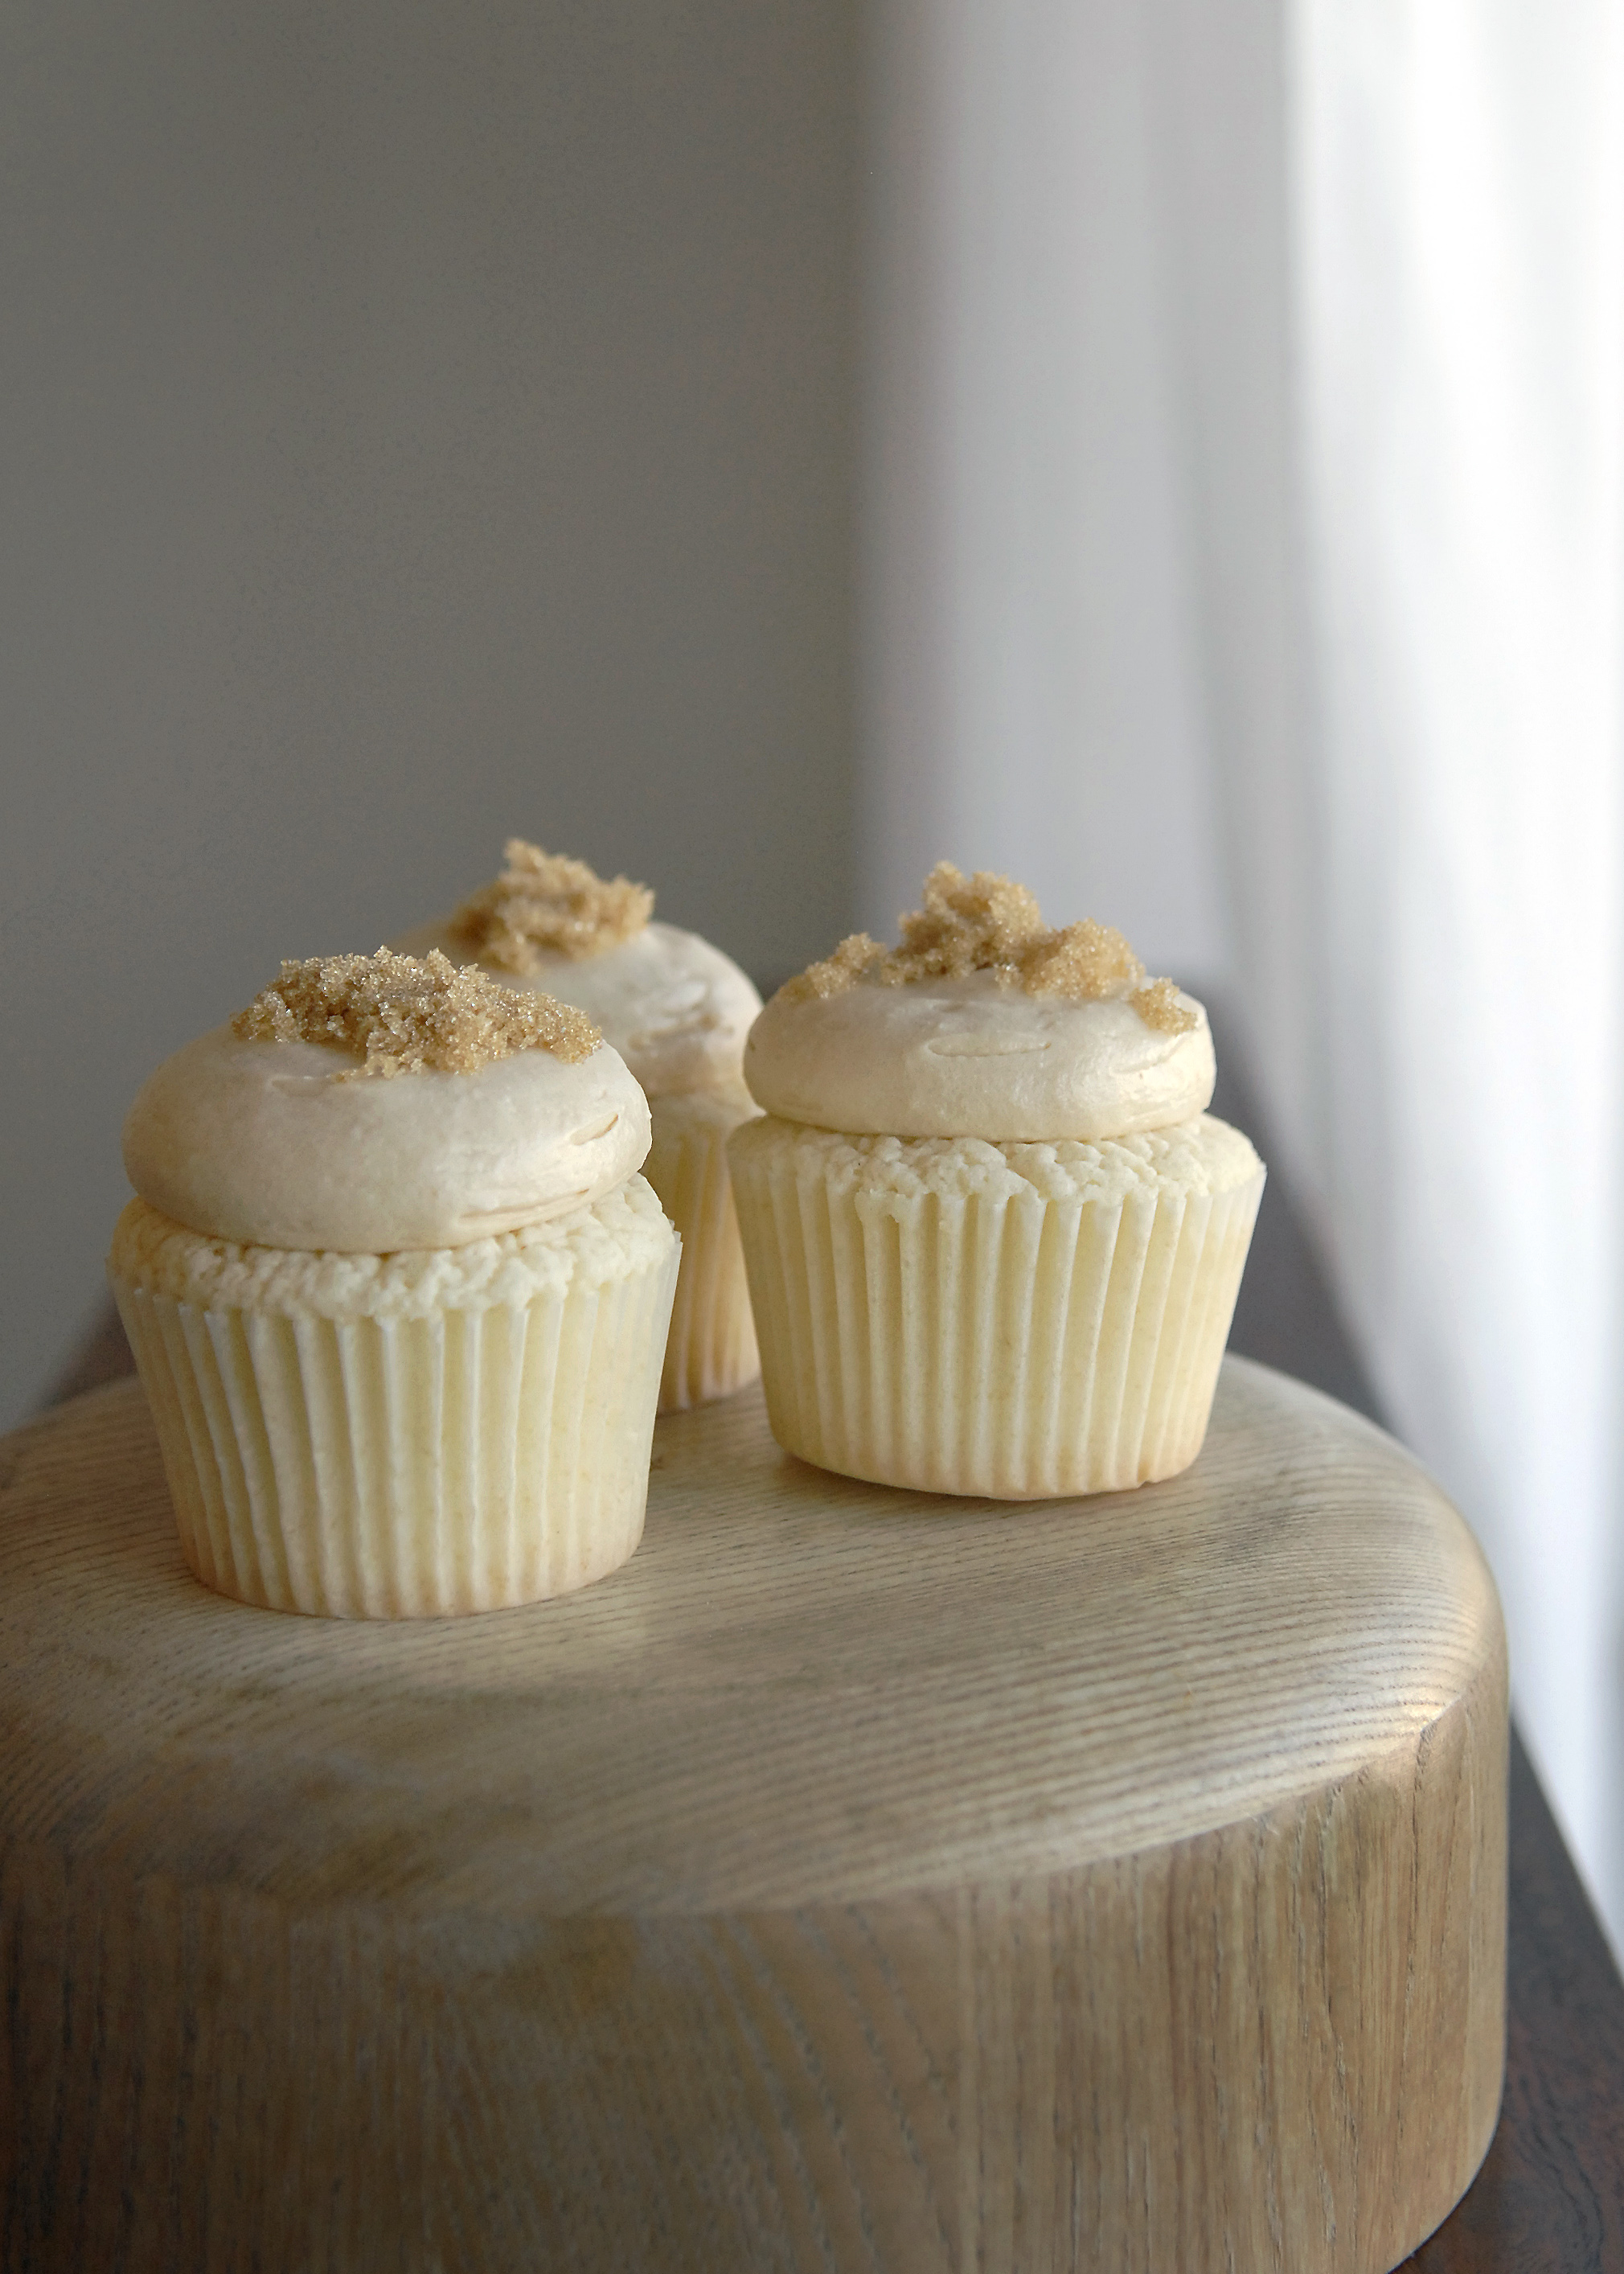 Brown Sugar Caramel Cupcake   2.95 each  A fall favorite! Caramel cream cheese frosting atop tender little cupcakes with just a pinch of brown sugar on top!   (Available September through January)